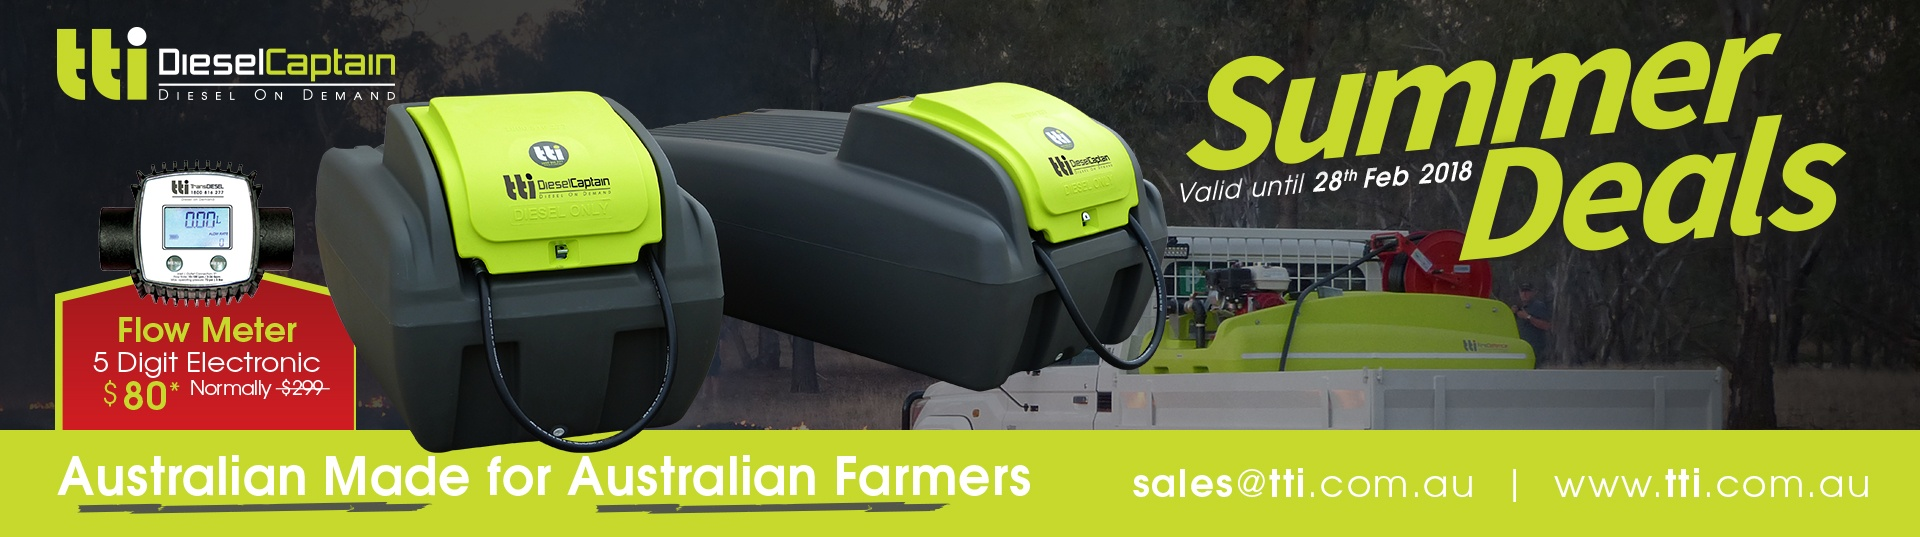 tti sales catalogue fire fighting equipment tank tanks trailers australia summer deals 2017 2018